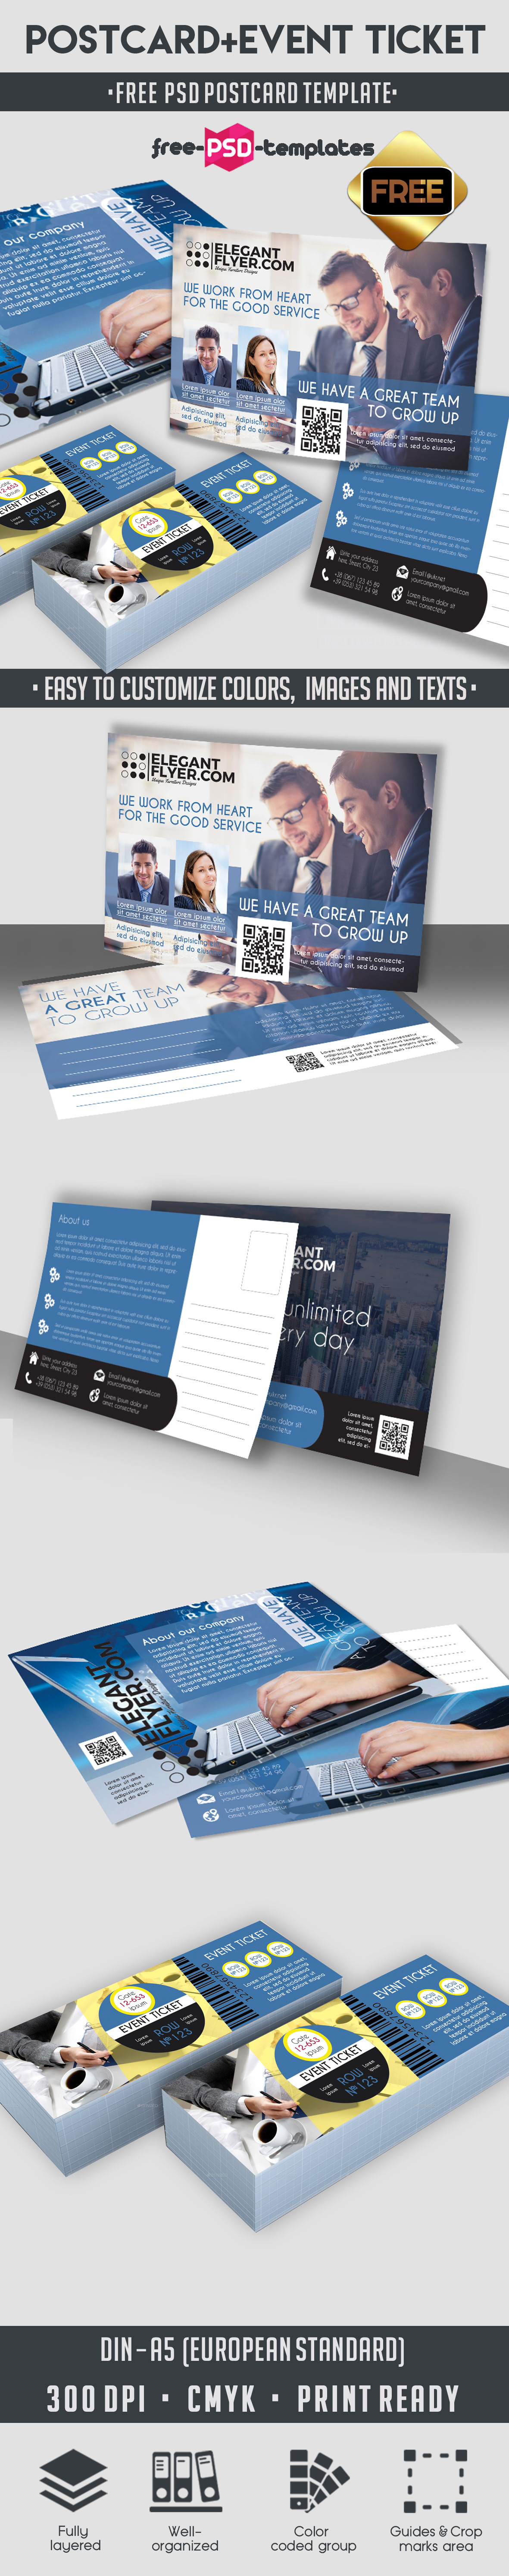 Bigpreviewfree-3-postcard-a5-and-event-ticket